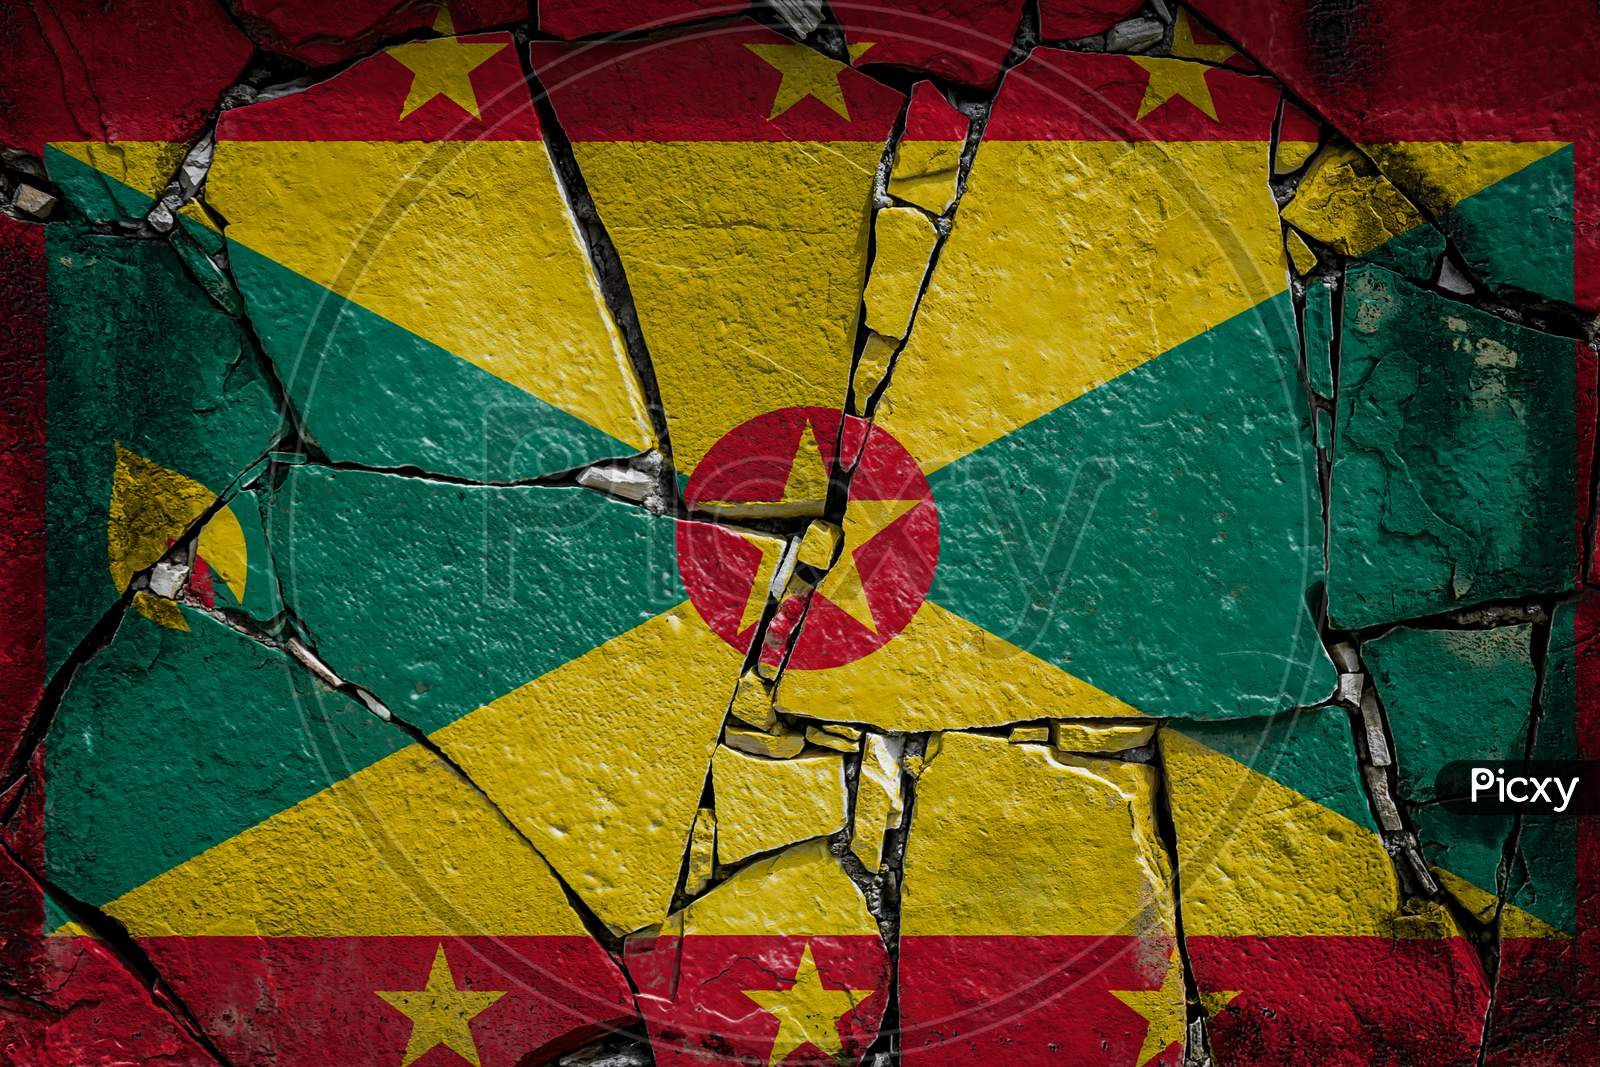 National Flag Of Grenada  Depicting In Paint Colors On An Old Stone Wall. Flag  Banner On Broken  Wall Background.